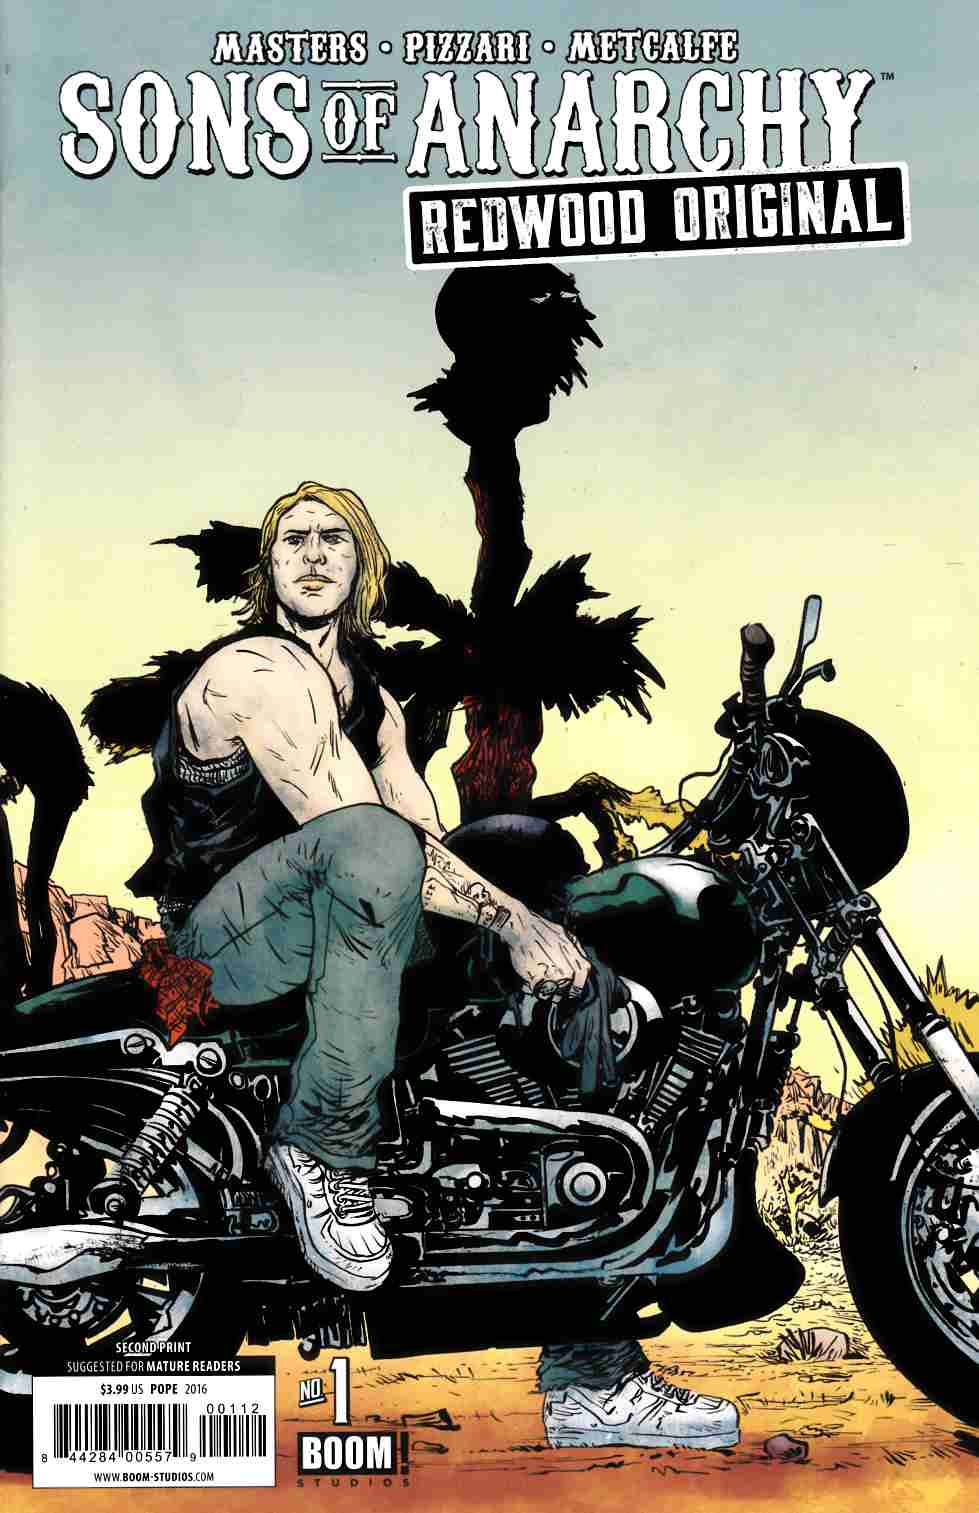 Sons Of Anarchy Redwood Original #1 Second Printing [Boom Comic] LARGE